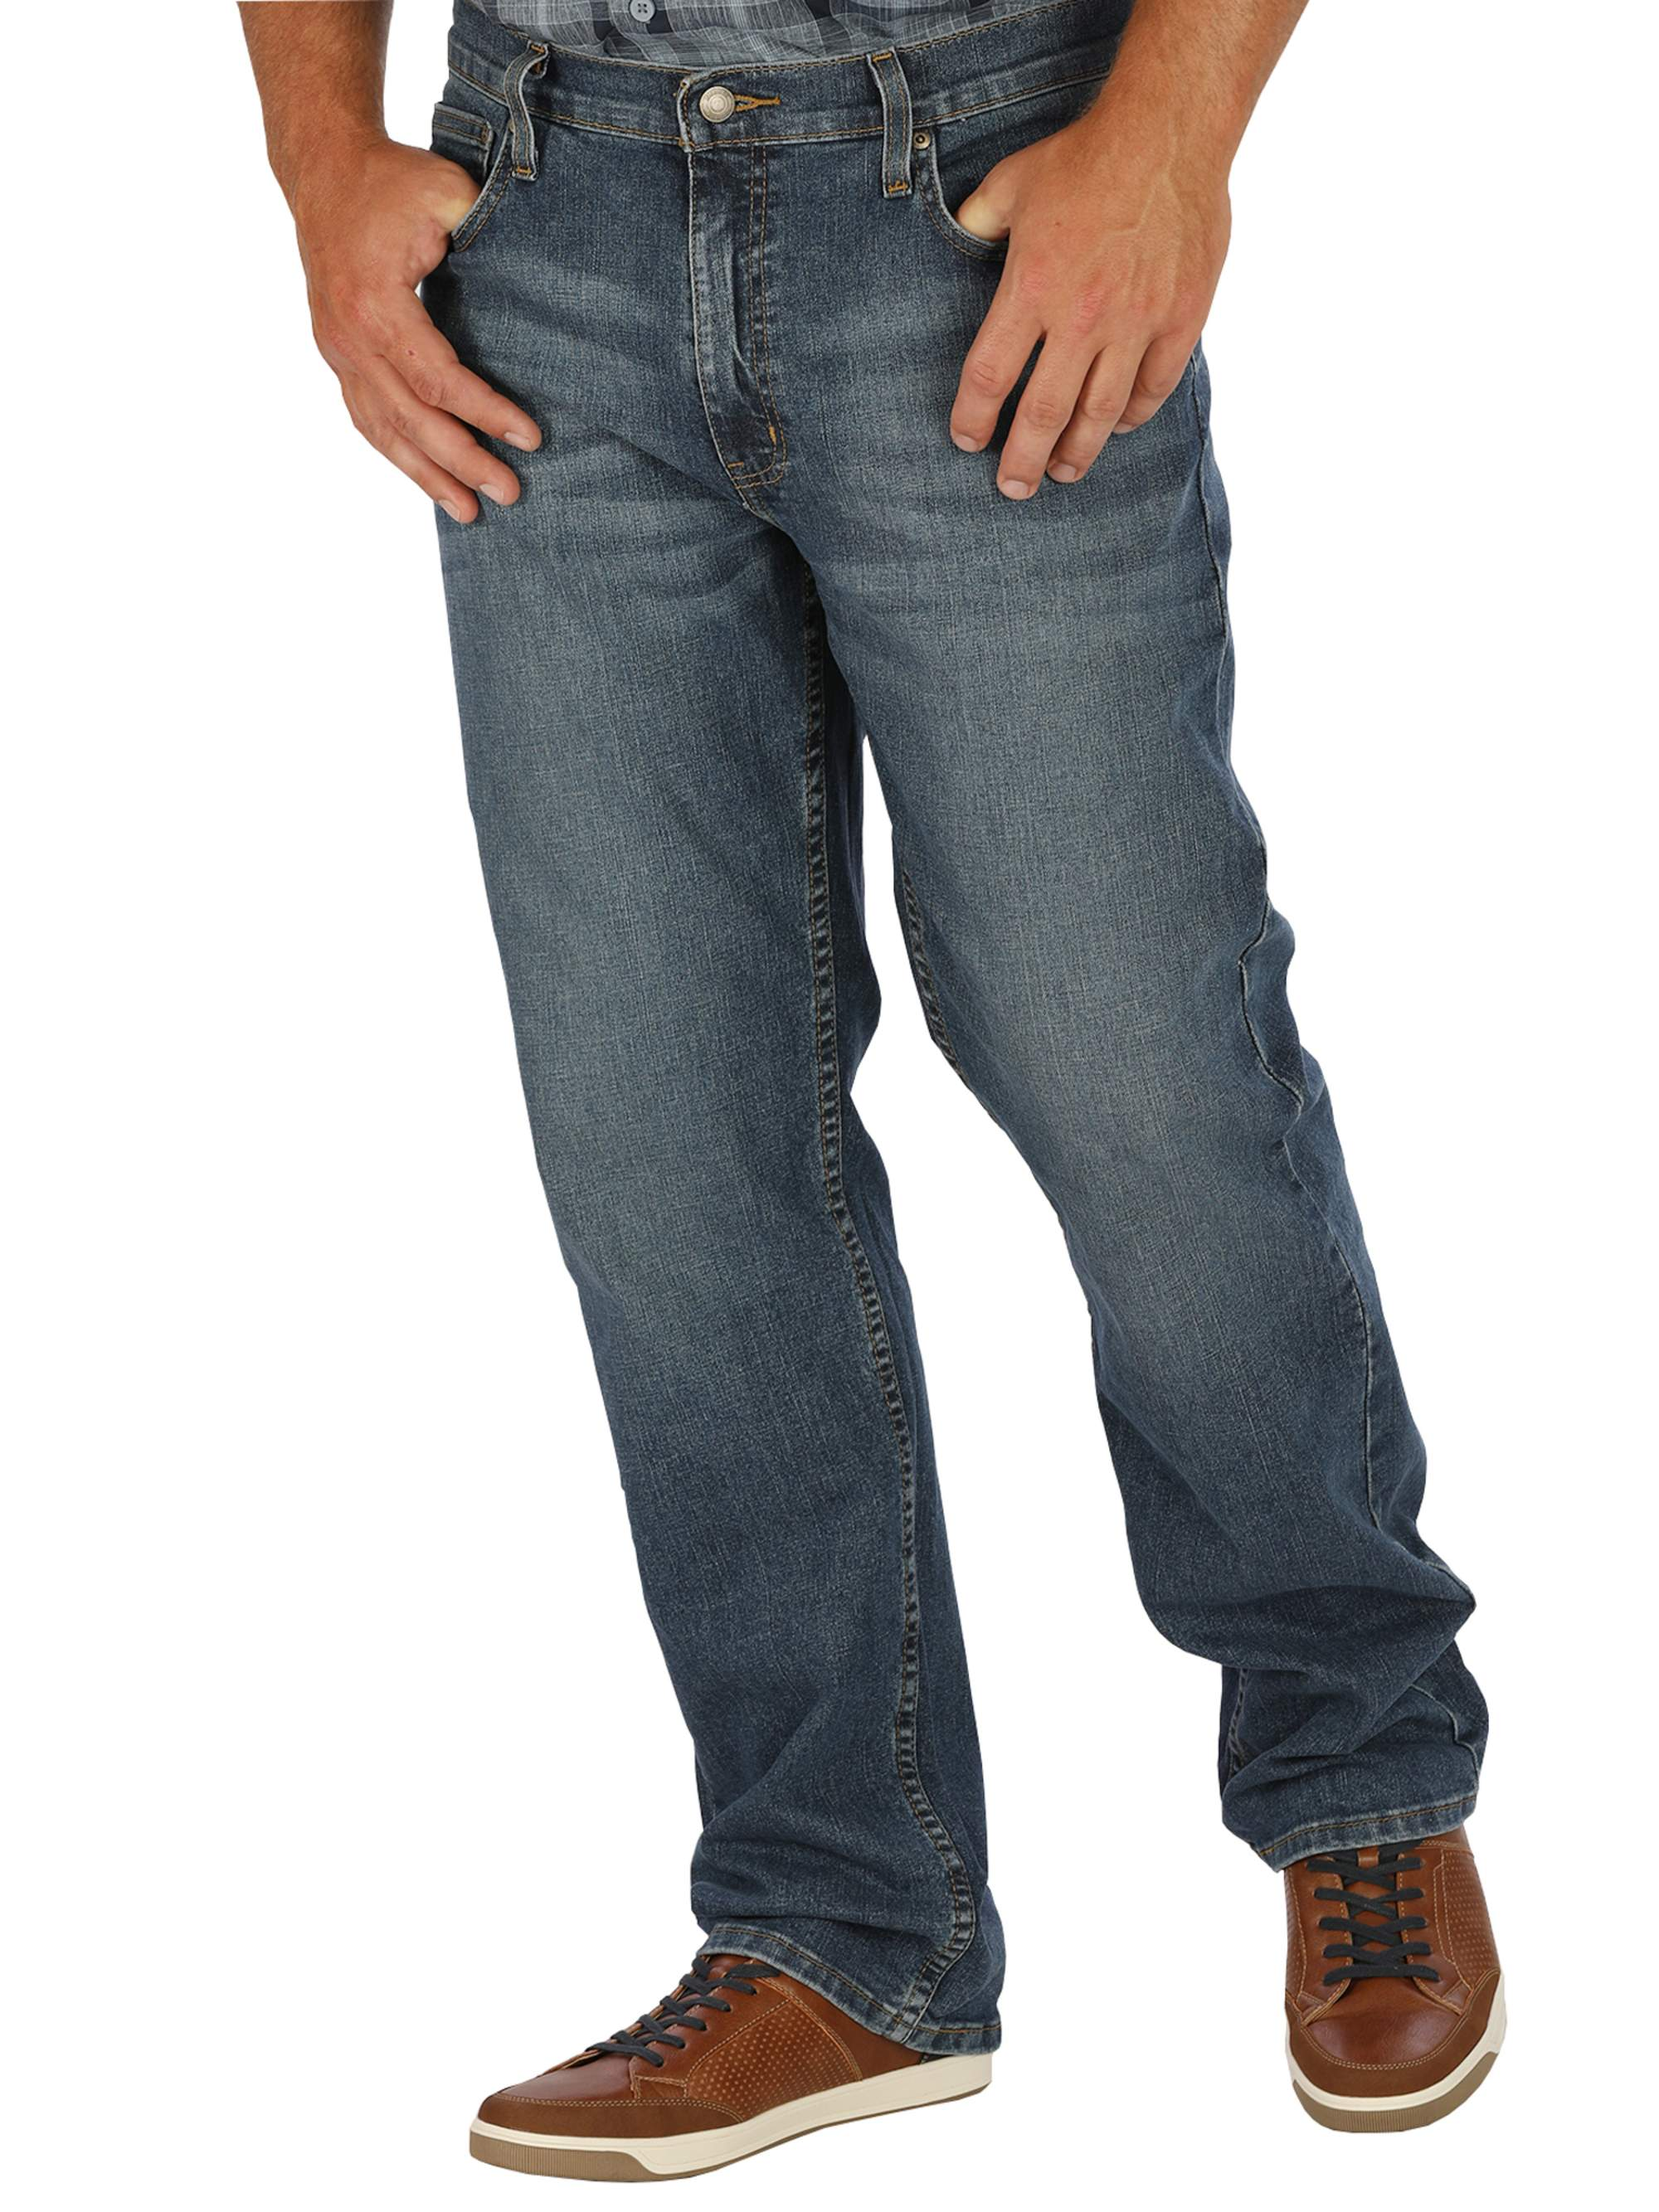 CLEARANCE: GEORGE Men's Athletic Flex Fit Jean (GM09509)-GEORGE